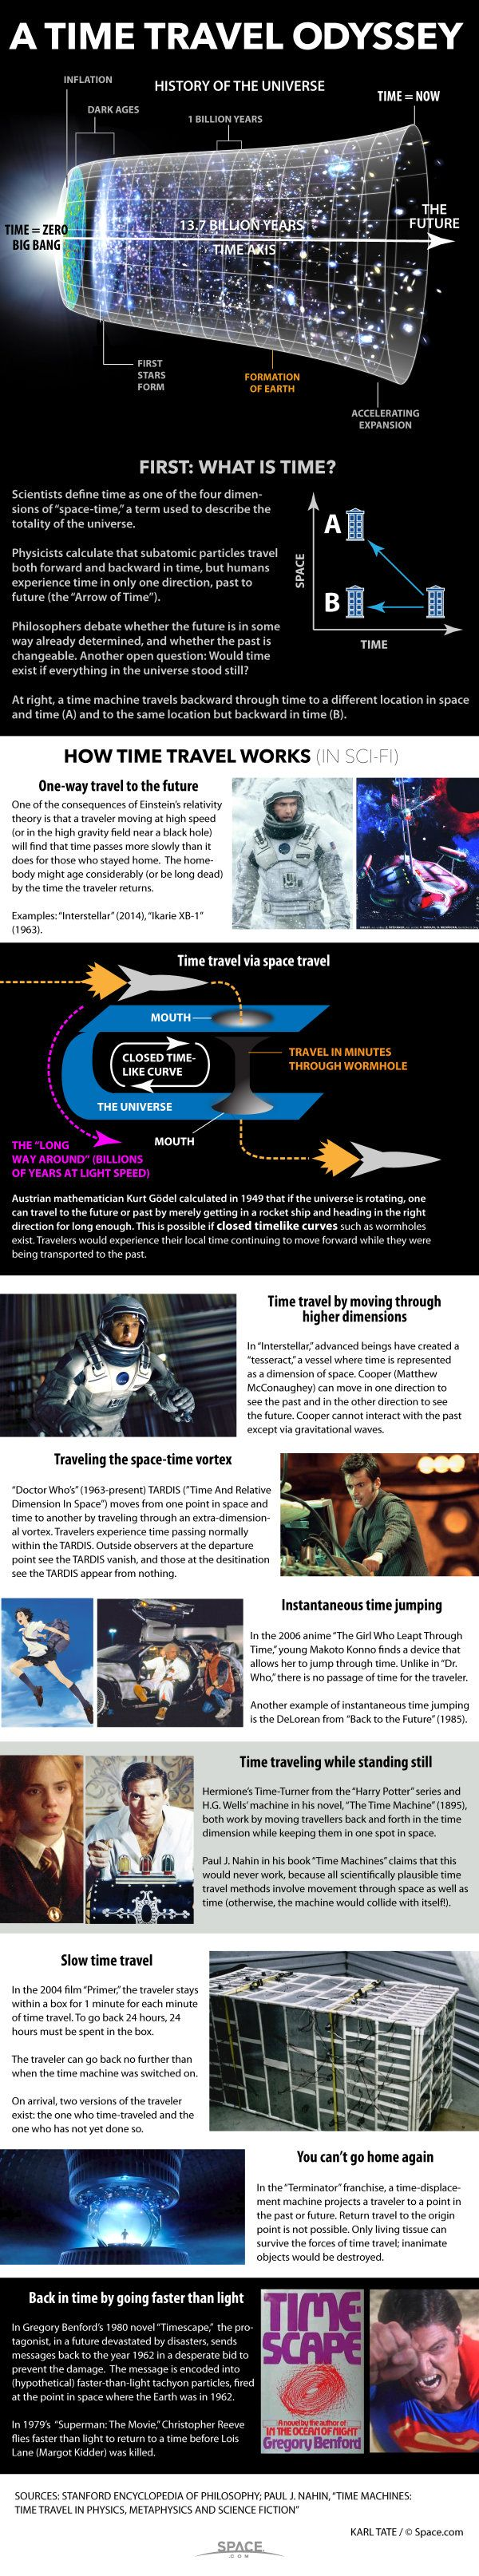 How Time Travel Works in Science Fiction (Infographic)